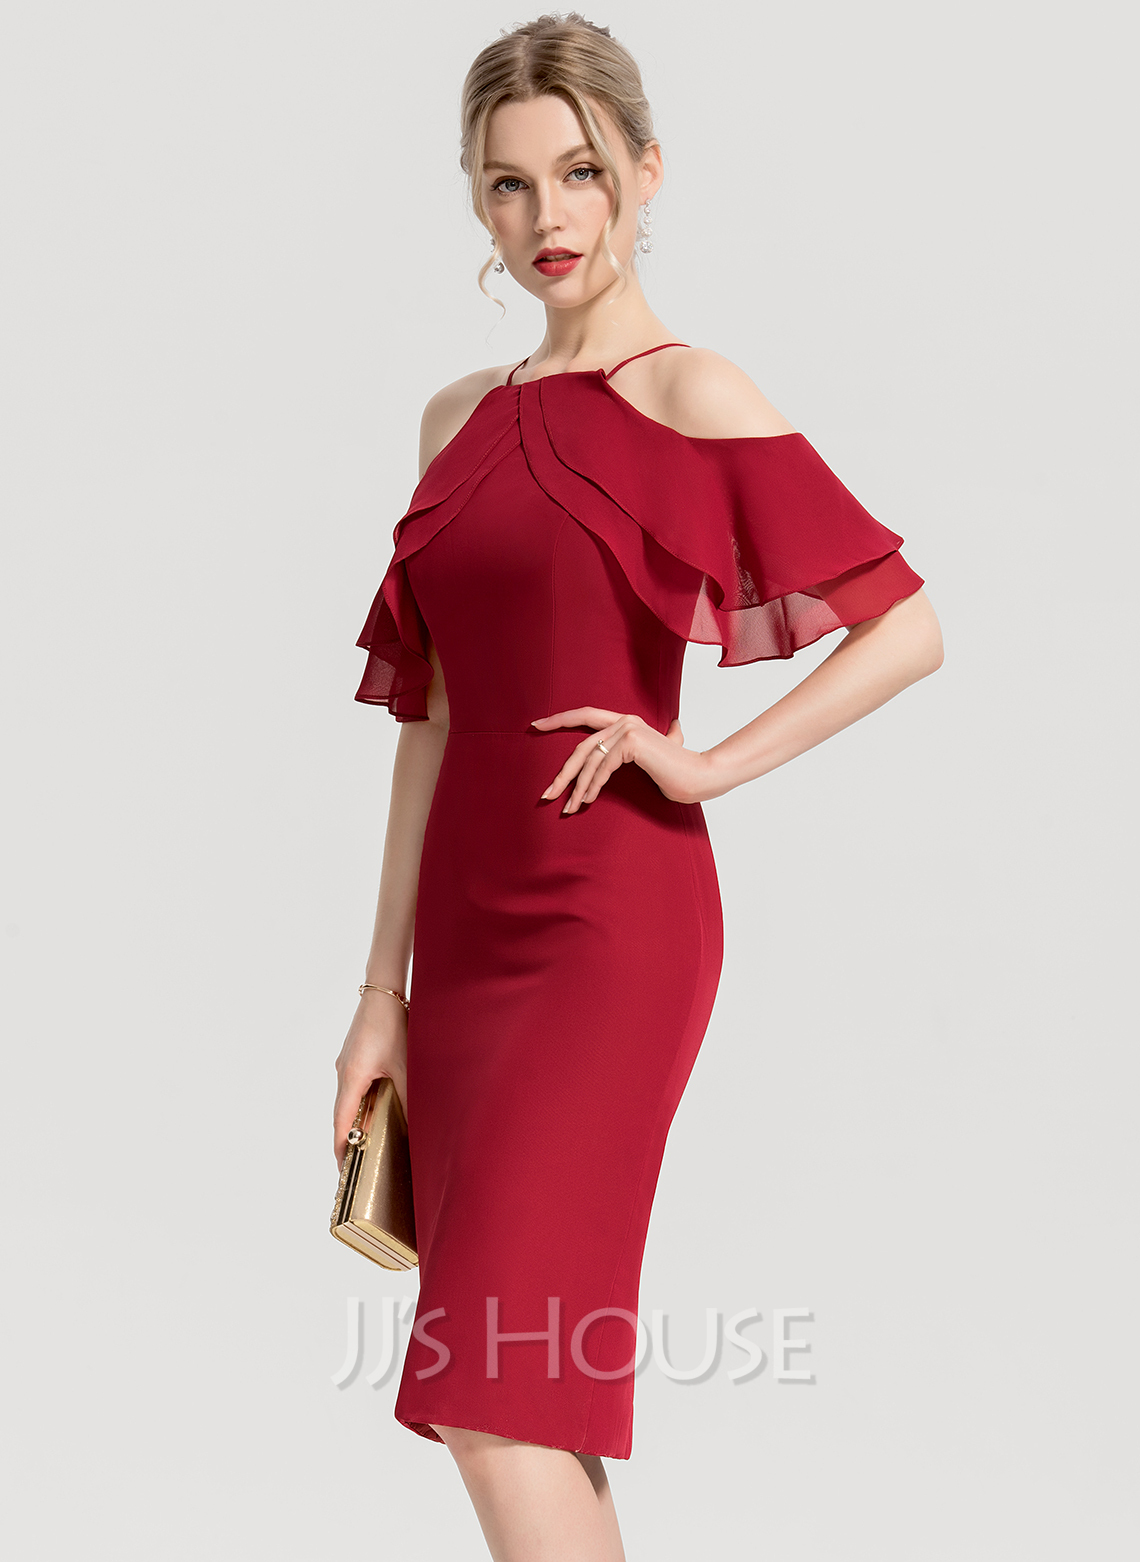 528dde0a520 Sheath Column Square Neckline Knee-Length Chiffon Cocktail Dress With  Cascading Ruffles. Loading zoom